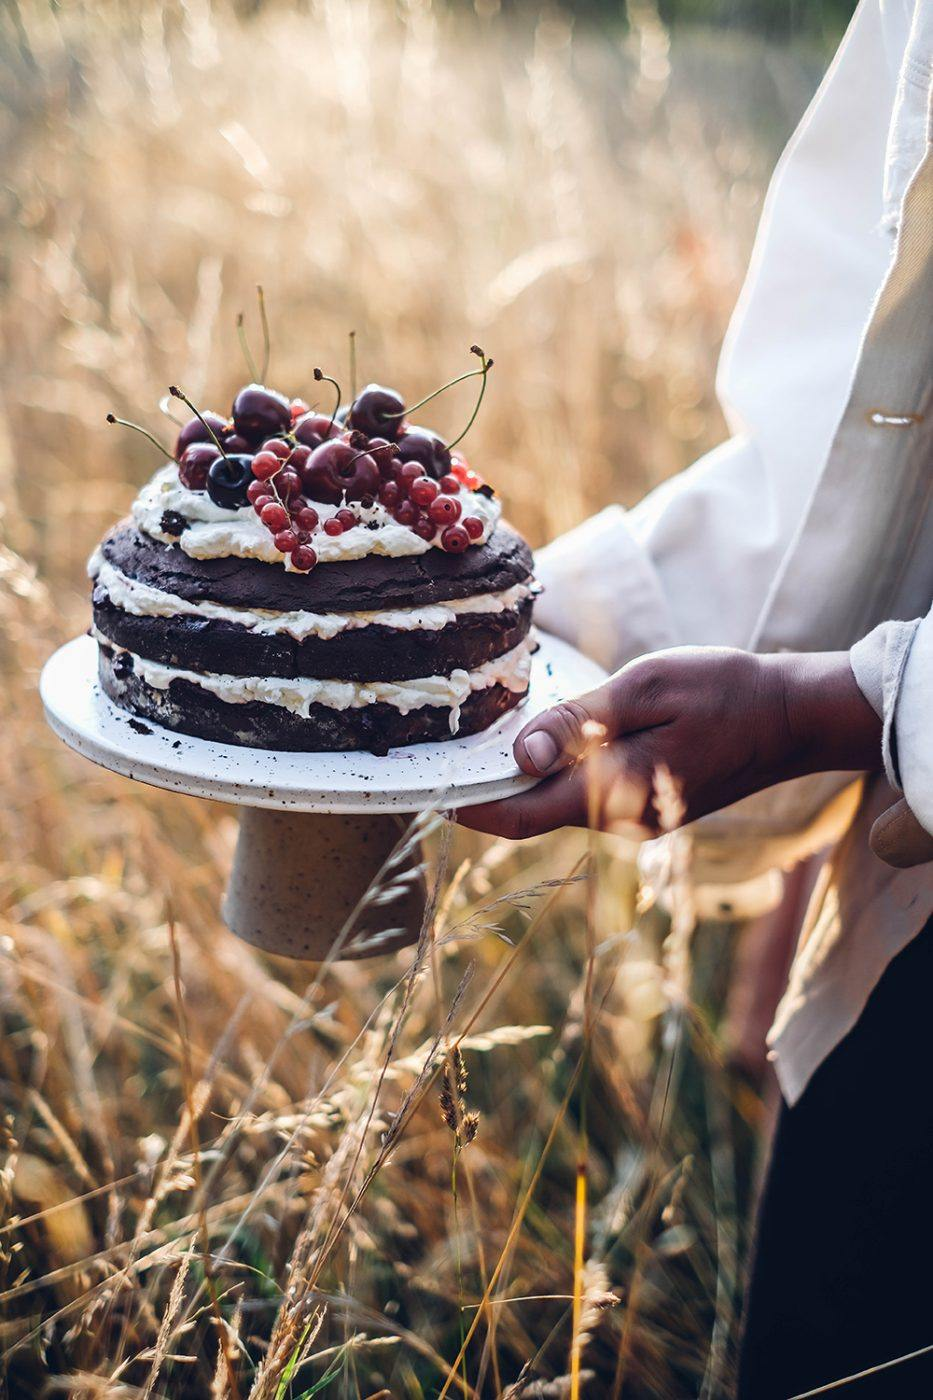 Image for Gluten-free Chocolate-Cherry Cake with Berries